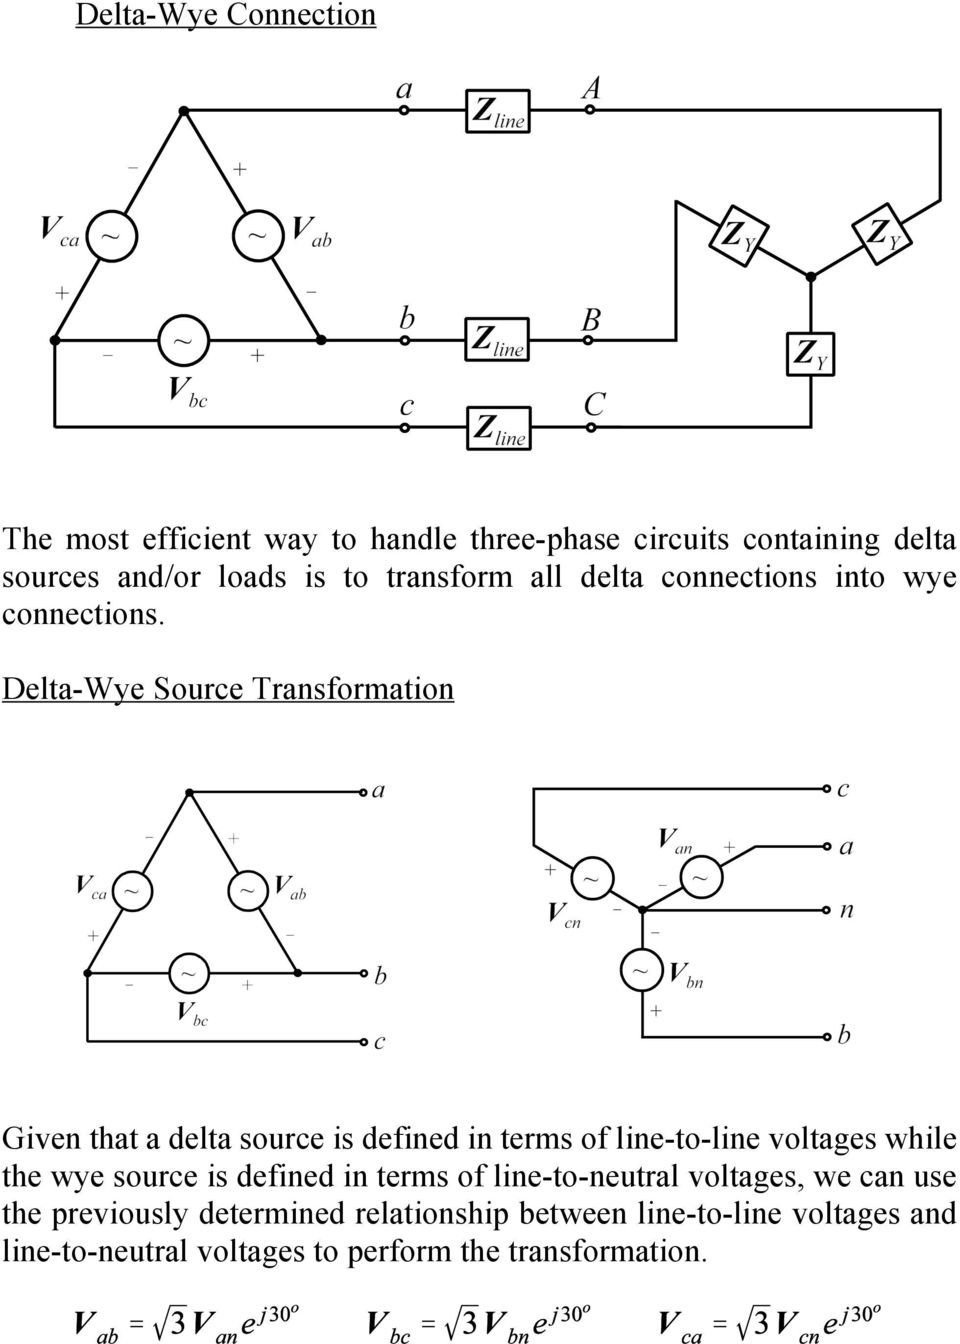 Balanced Three Phase Circuits Pdf Neutrals120 Volts And 240 Oh Mymultiwirediagramjpg Delta Wye Source Transformation Given That A Is Defined In Terms Of Line